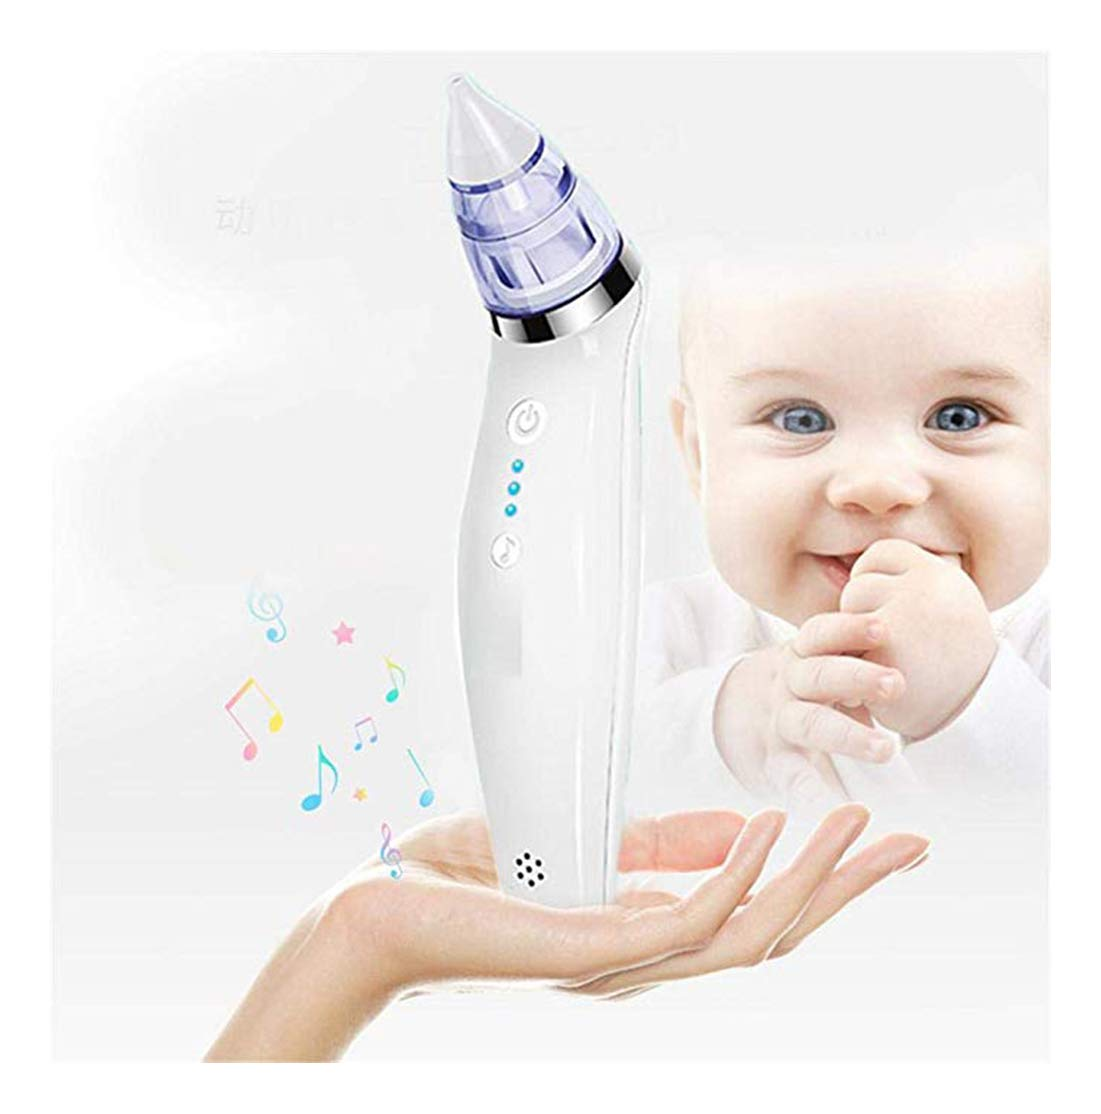 Baby Nasal Aspirator, Electric Nasal Aspirator, Cleanable and Reusable, 3 Suction Levels with 2 Sizes Silicone Tips, Baby Mucus Runny Snot Nostril Clean Tool-White by JXFS